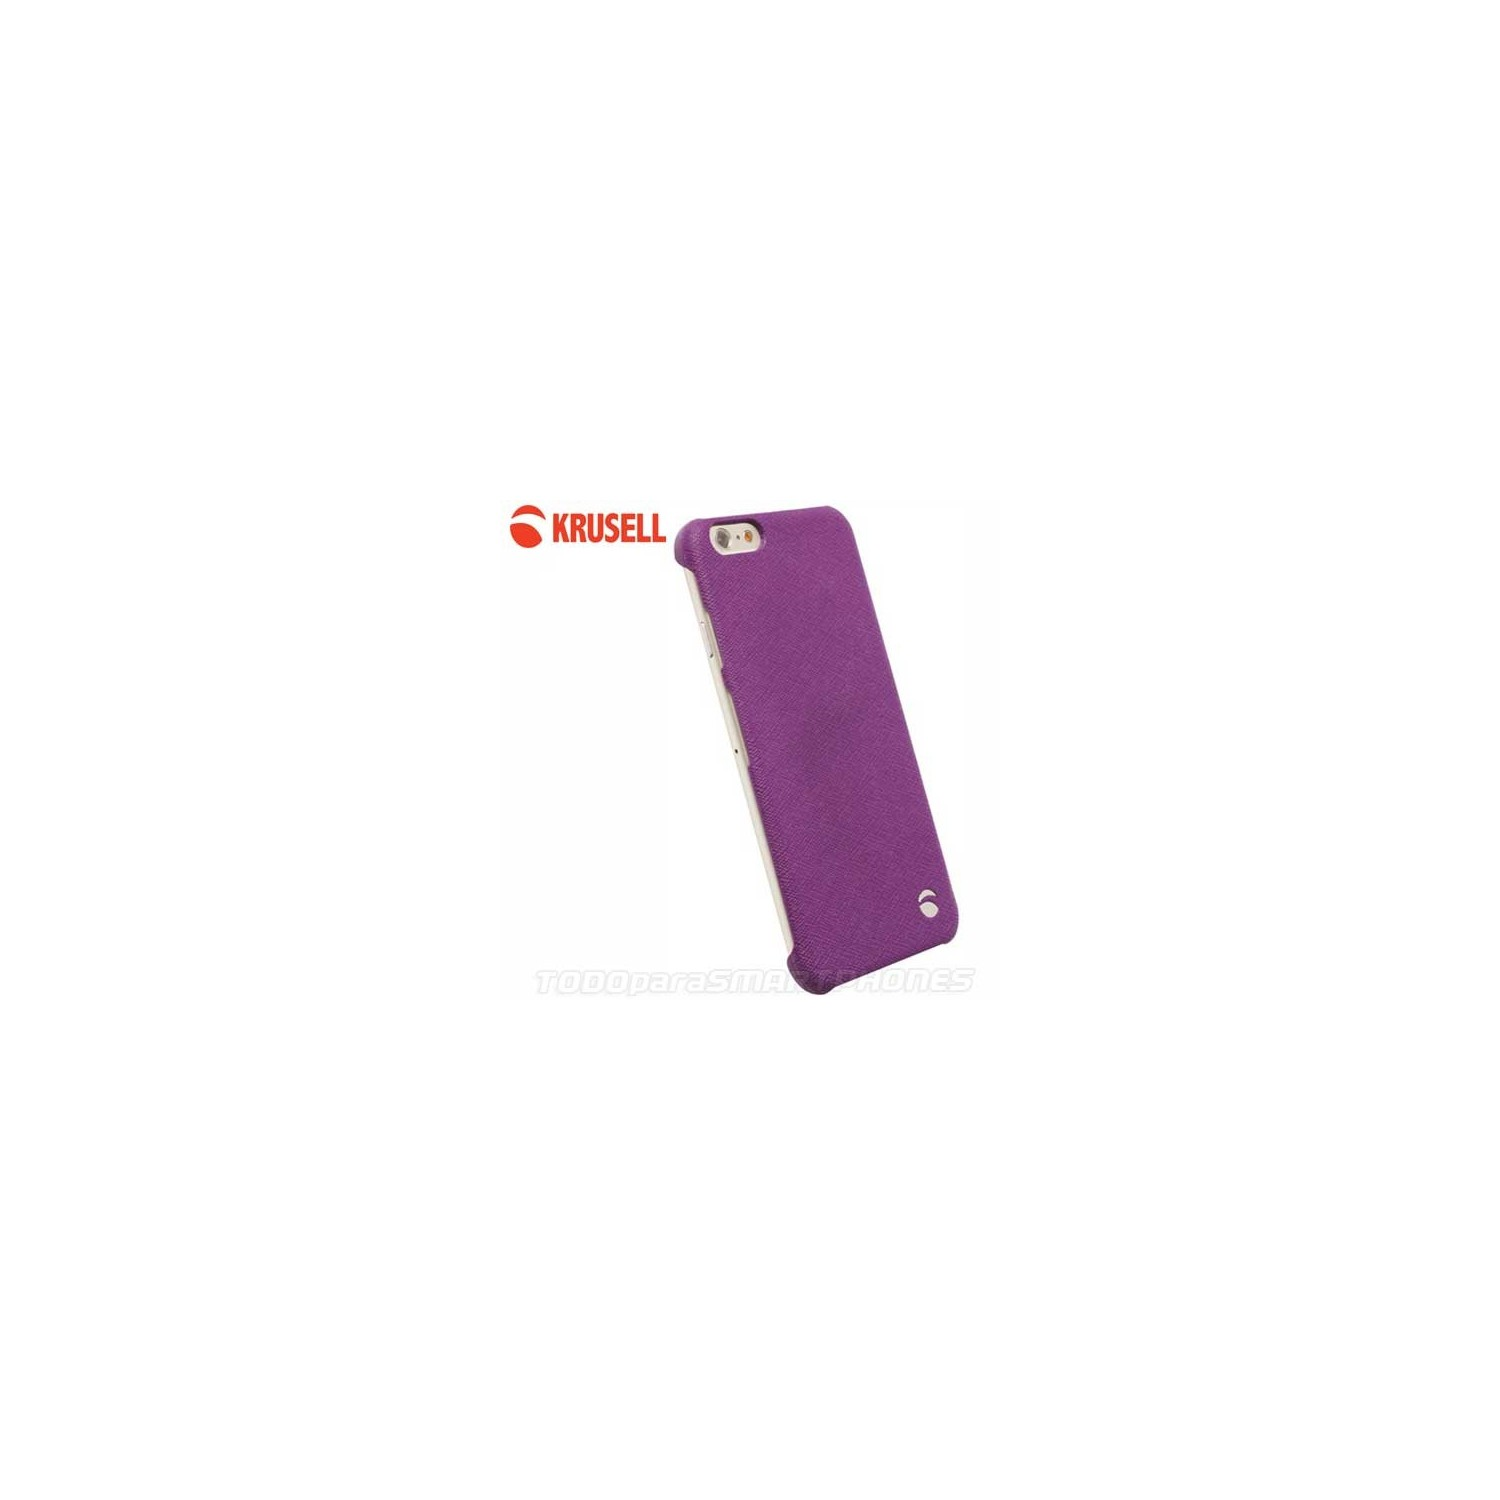 Case - Krusell Malmo Texture Cover for iPhone 6s Purple